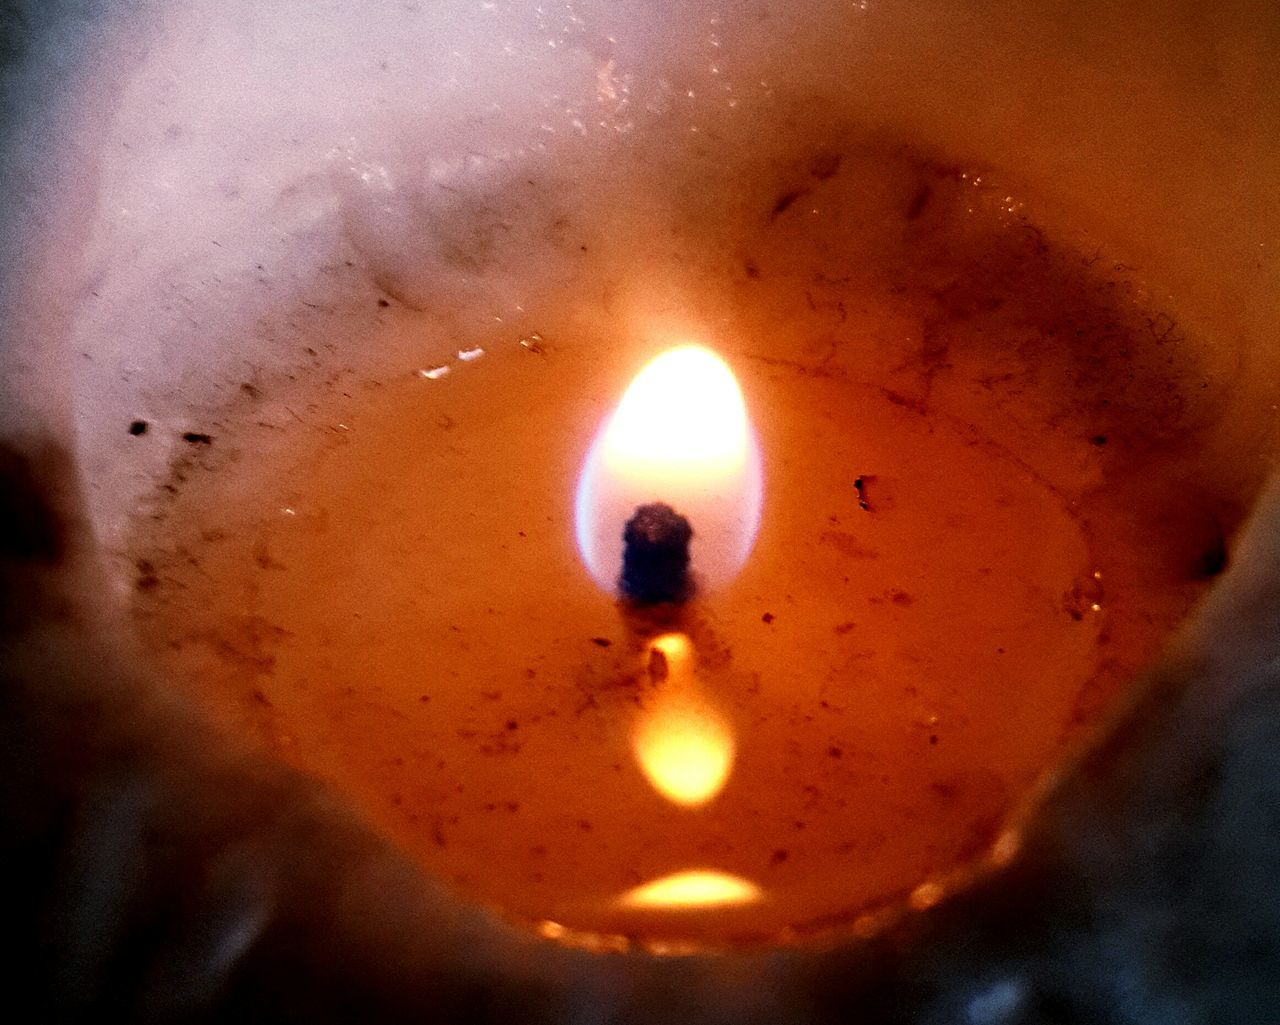 No People Heat - Temperature Indoors  Close-up Day Outdoors Mobile EyeEm Team EyeEm Best Shots Nature EyeEm Mobile Photography Fire Candle Türkiye Taking Photos Mobilephotography EyeEmBestPics EyeEm Gallery Eyeemphotography Photo Anıyakala Anıyakala📷📸 Architecture Samsungphoto